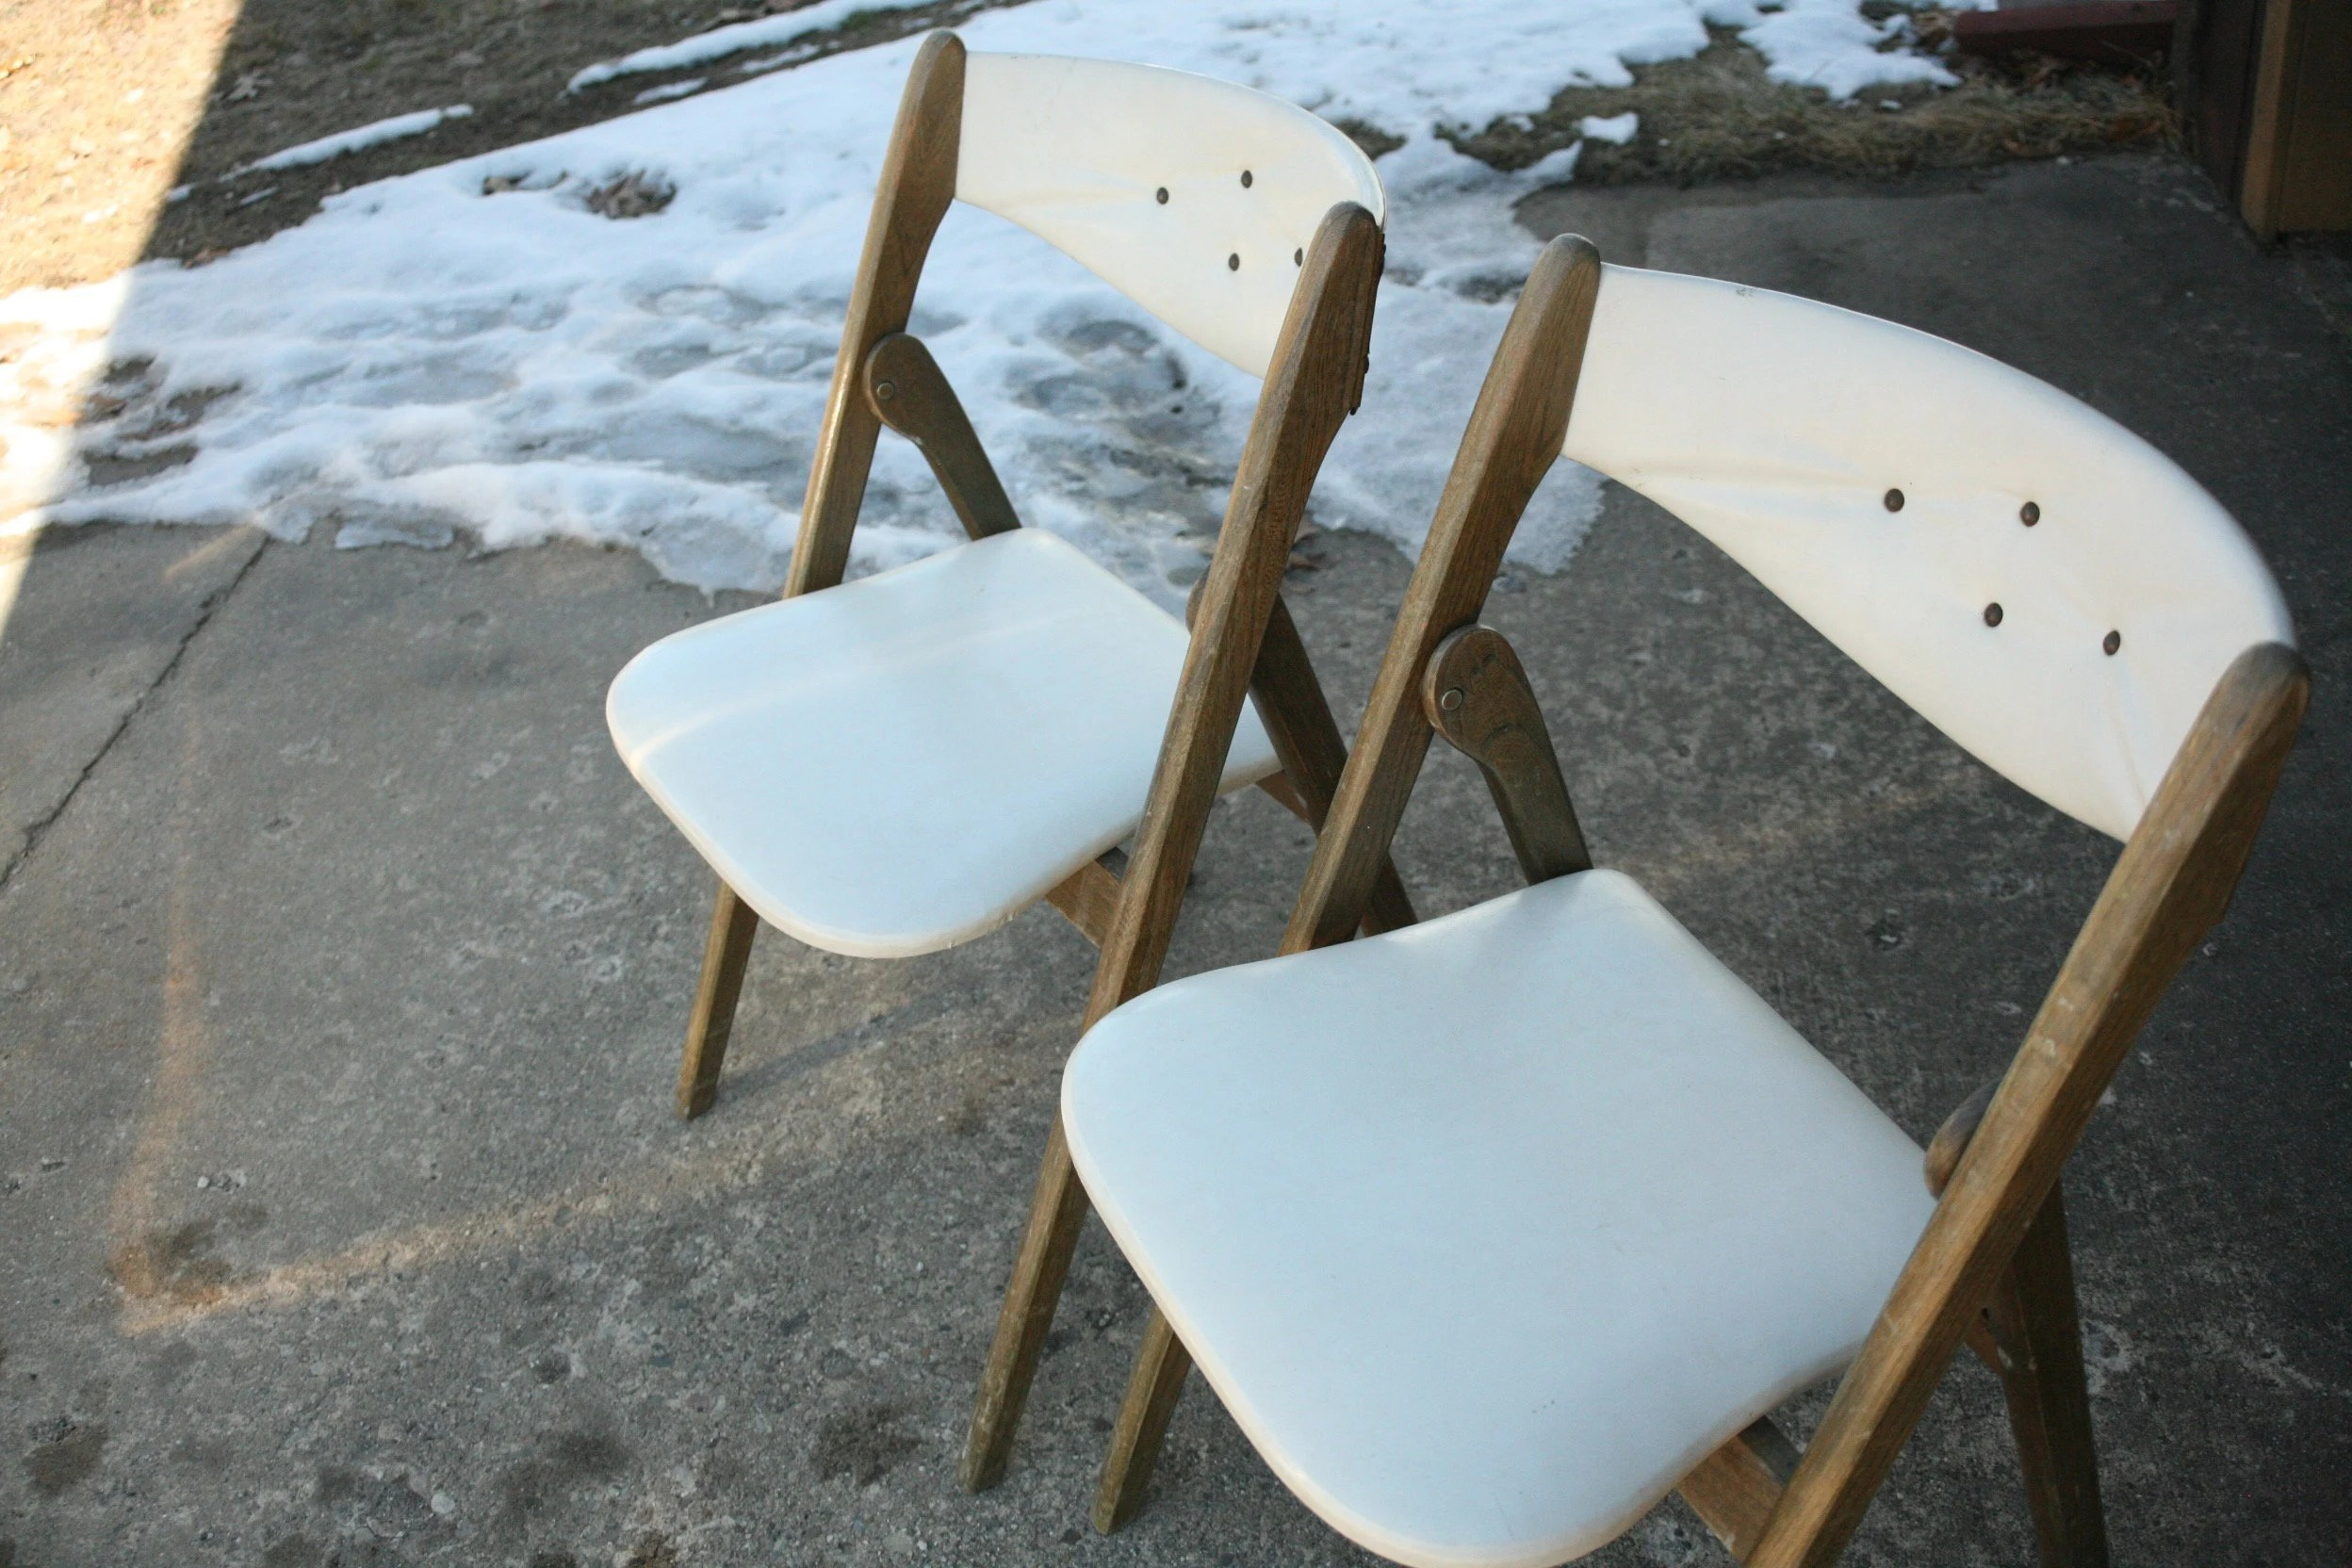 coronet folding chairs directions to chair covers and linens set of two mid century modern white etsy image 0